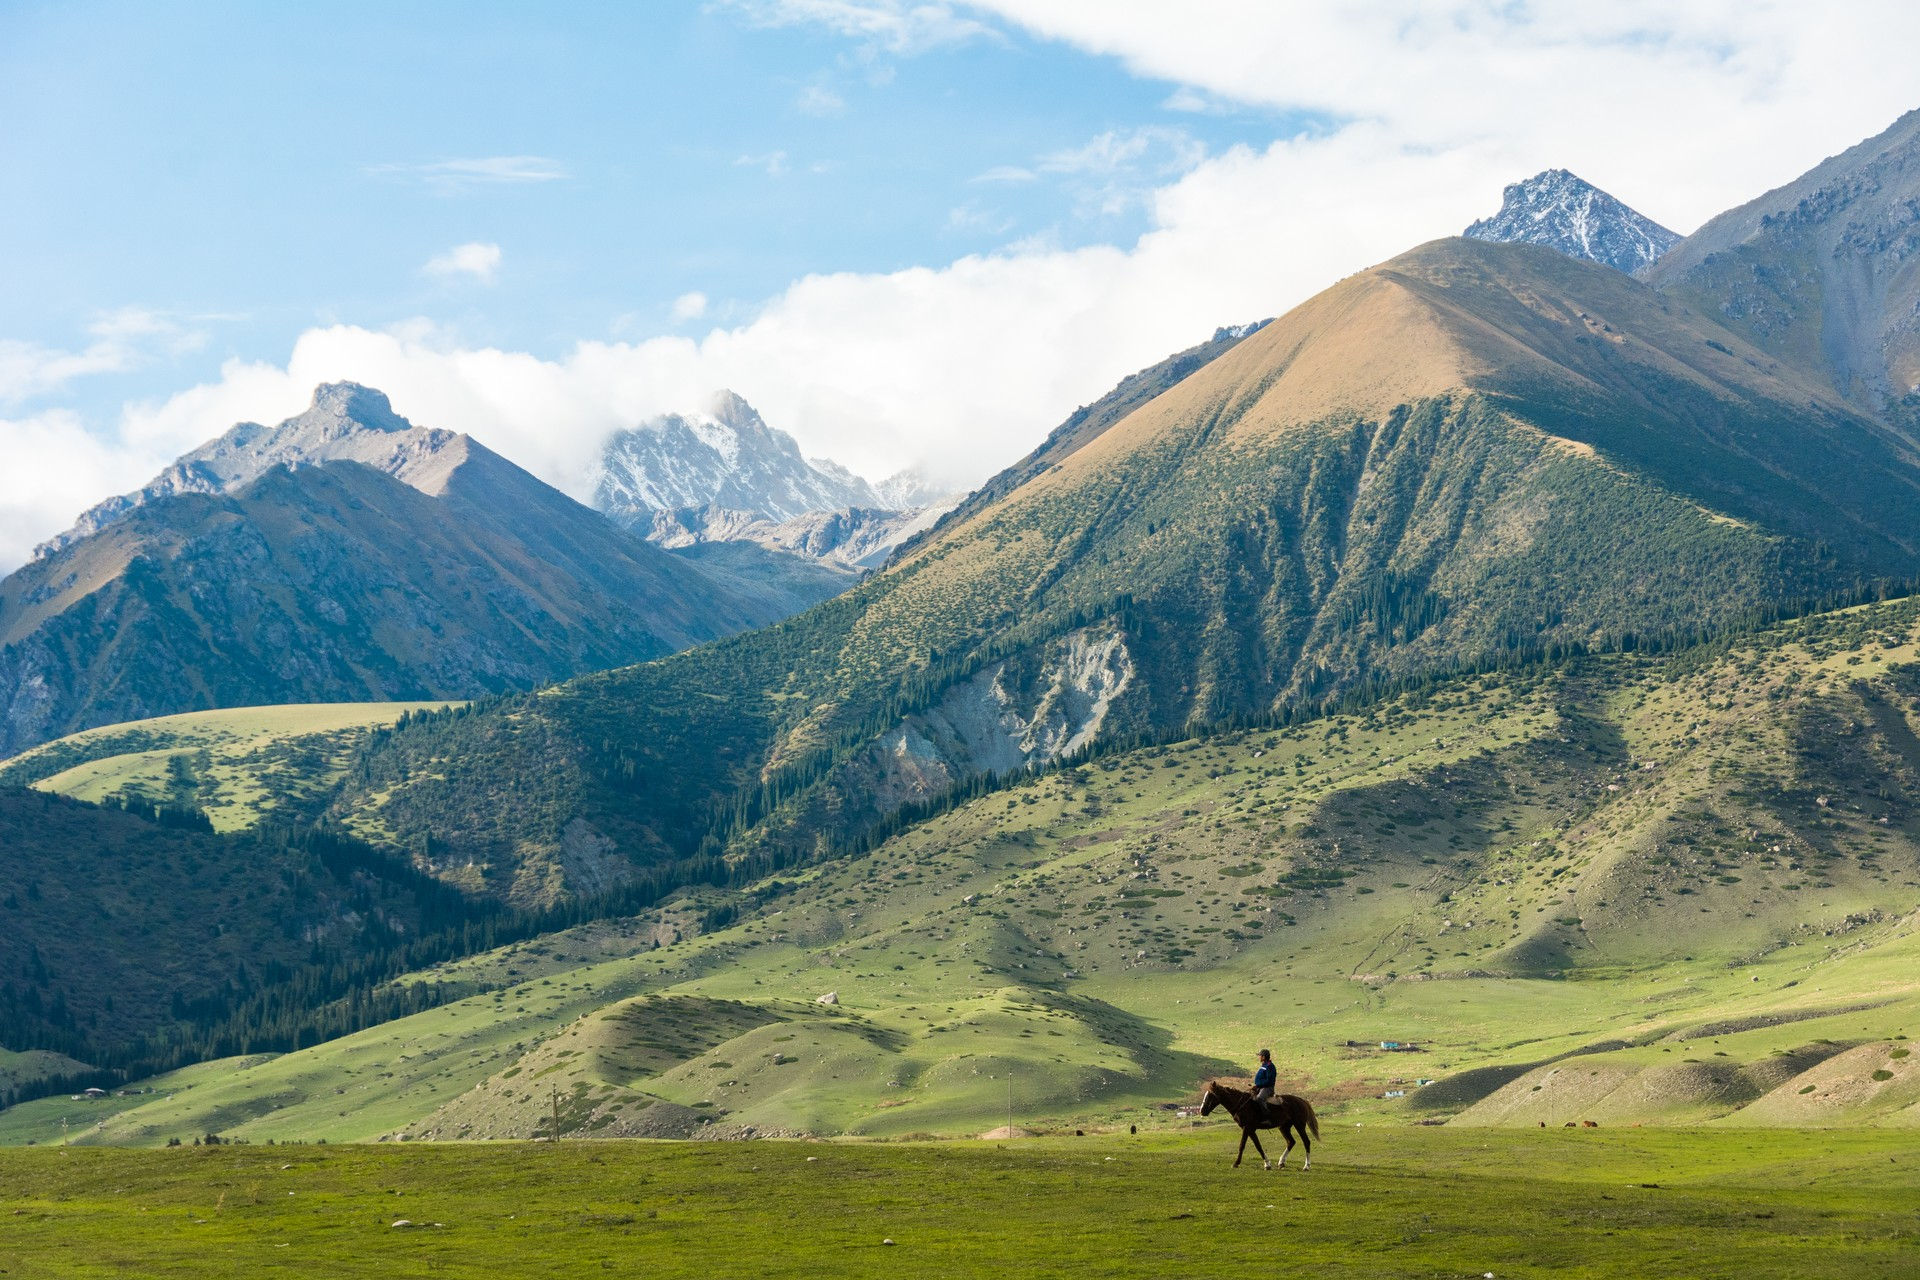 Rider in front of the Tien Shan mountains, Kyrgyzstan